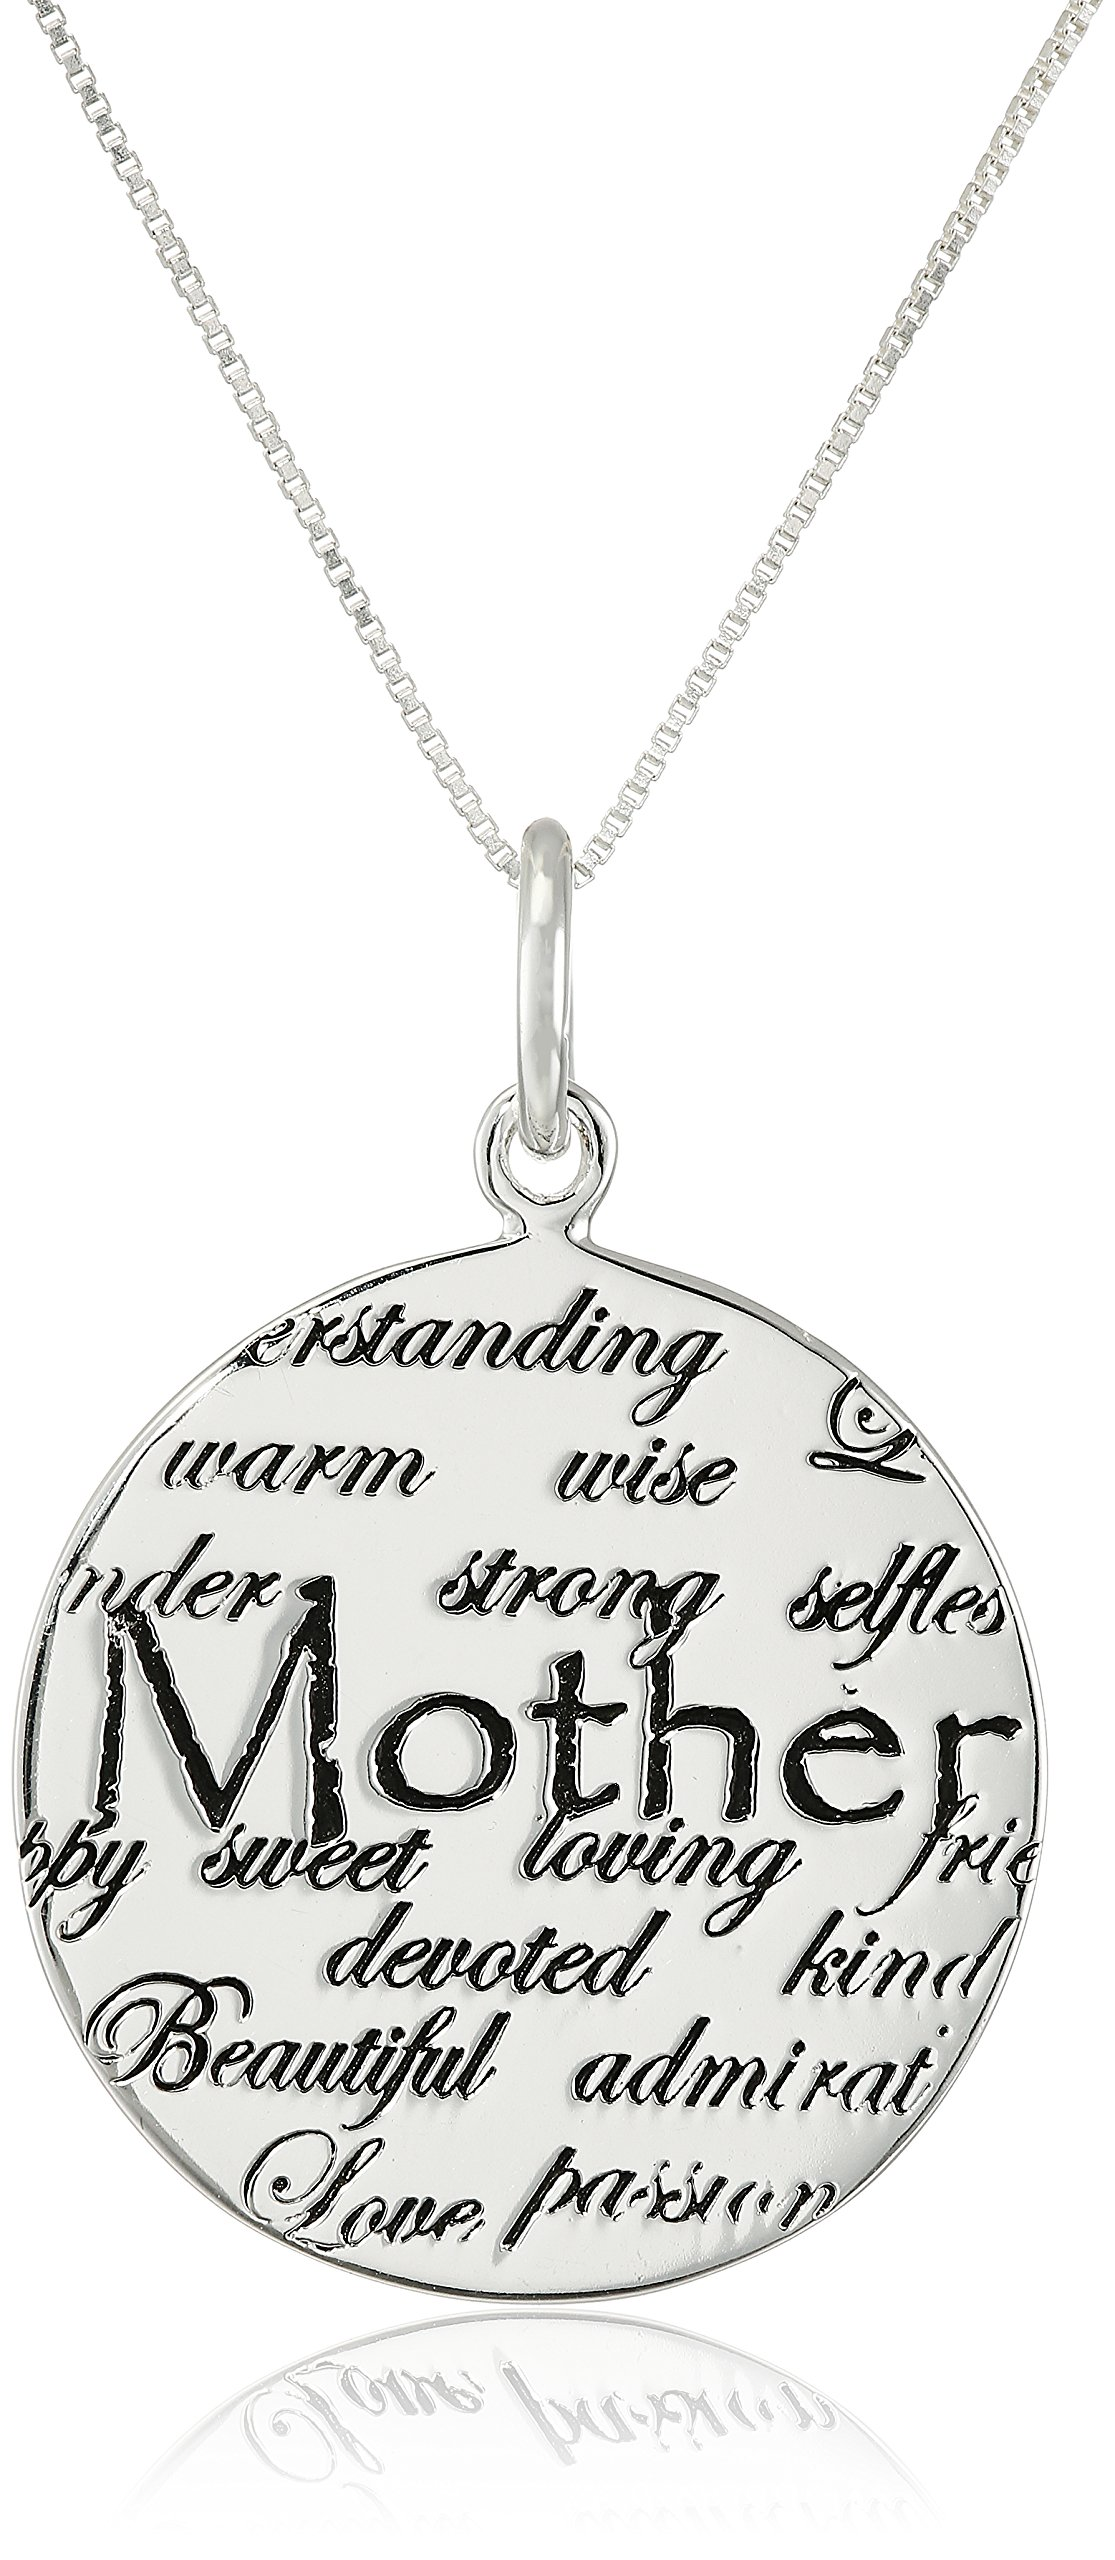 Mother daughter jewelry ideas